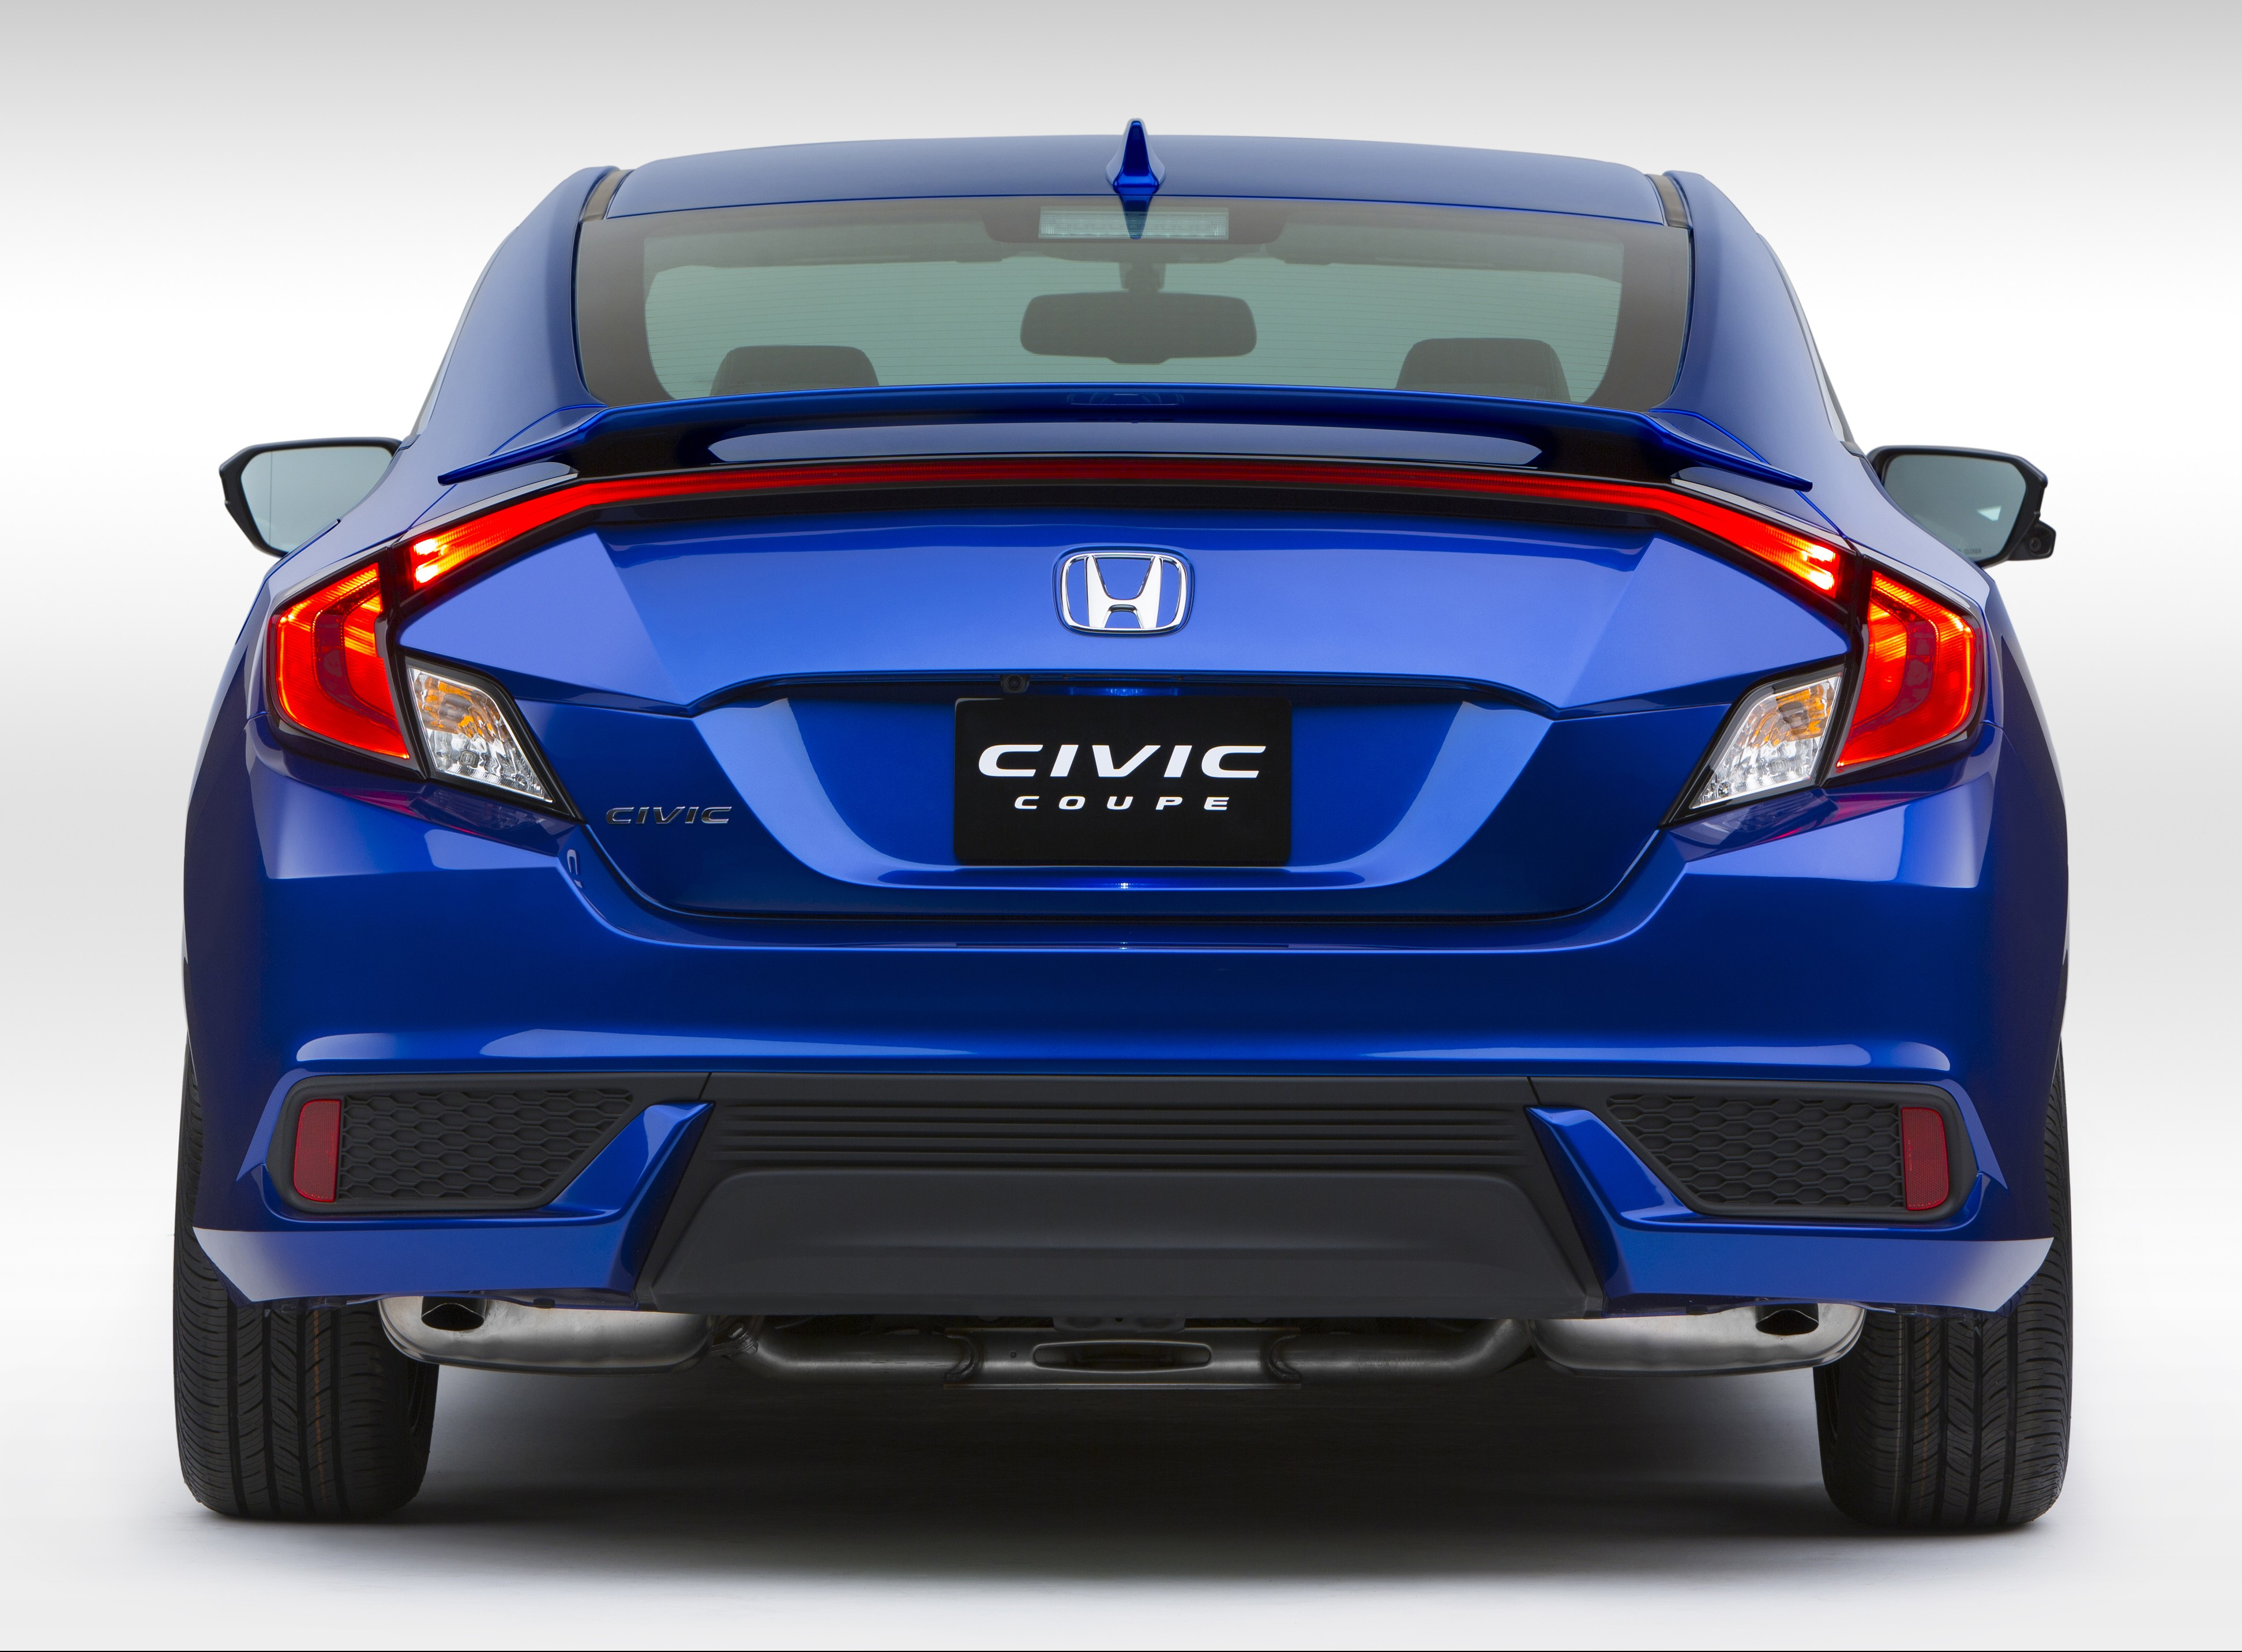 2016 honda civic coupe debuts with 174 hp 1 5l turbo image. Black Bedroom Furniture Sets. Home Design Ideas